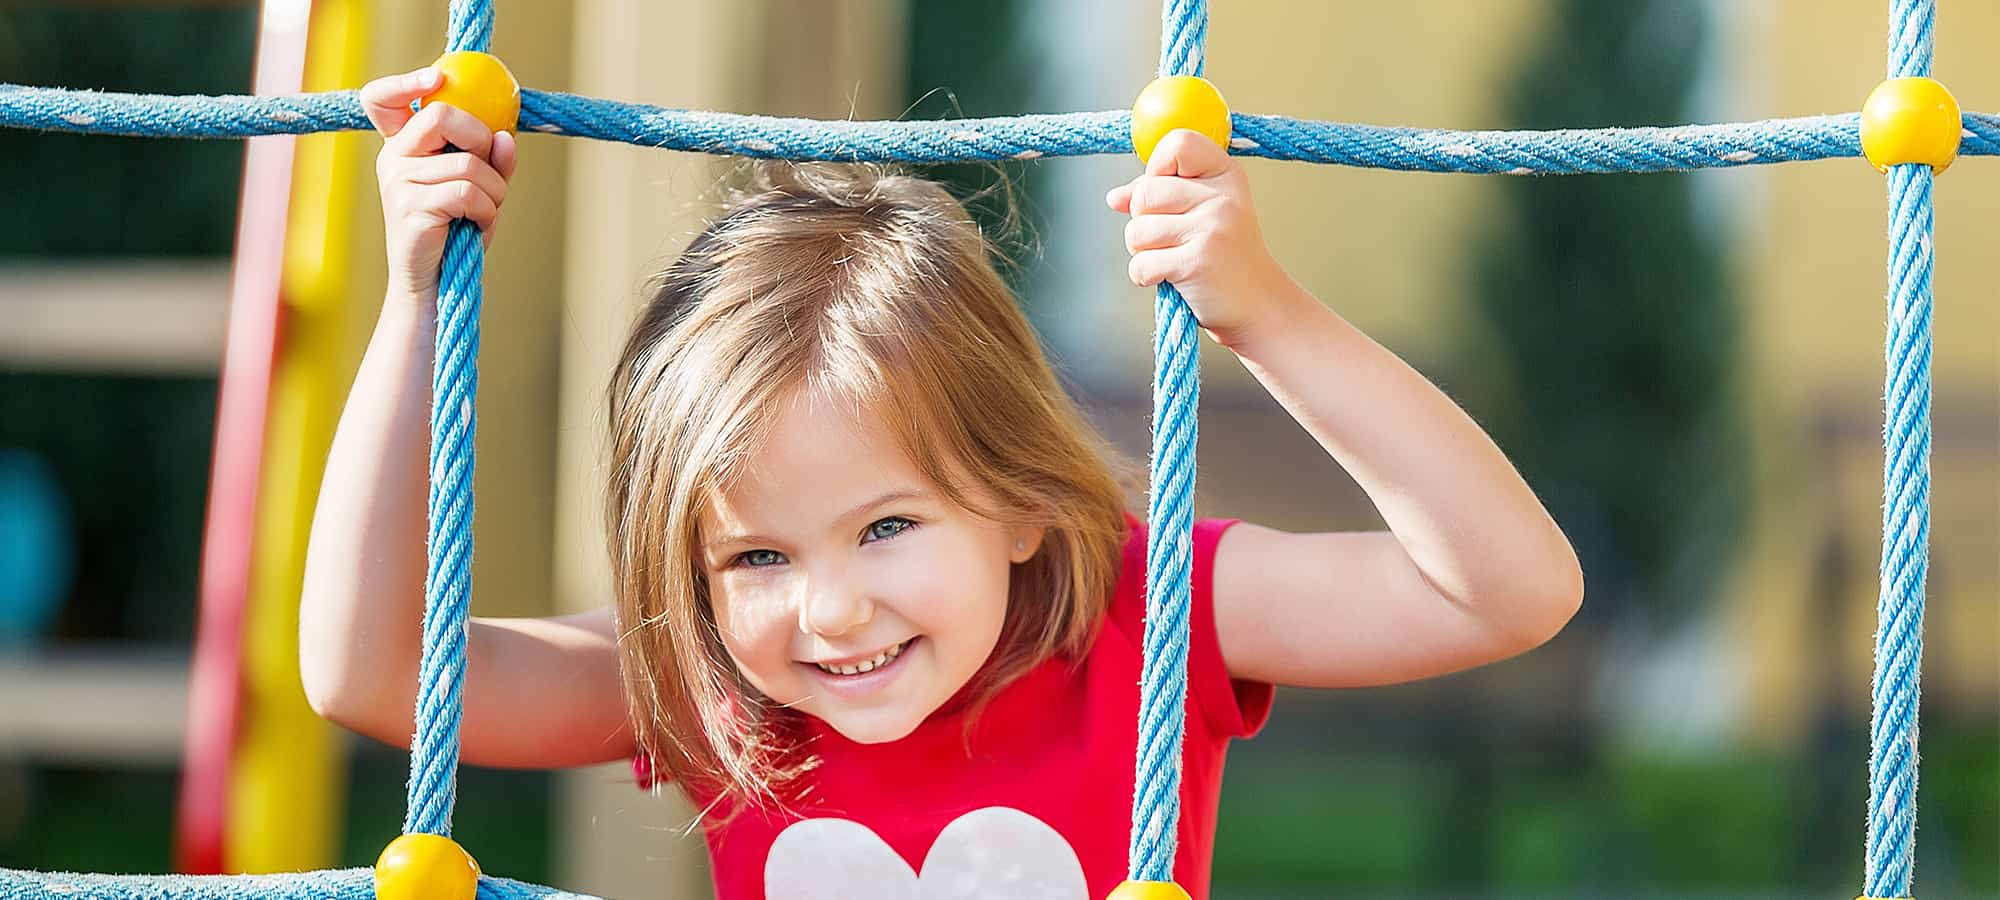 Top 10 Places to Take Young Children and Babies in Cairns